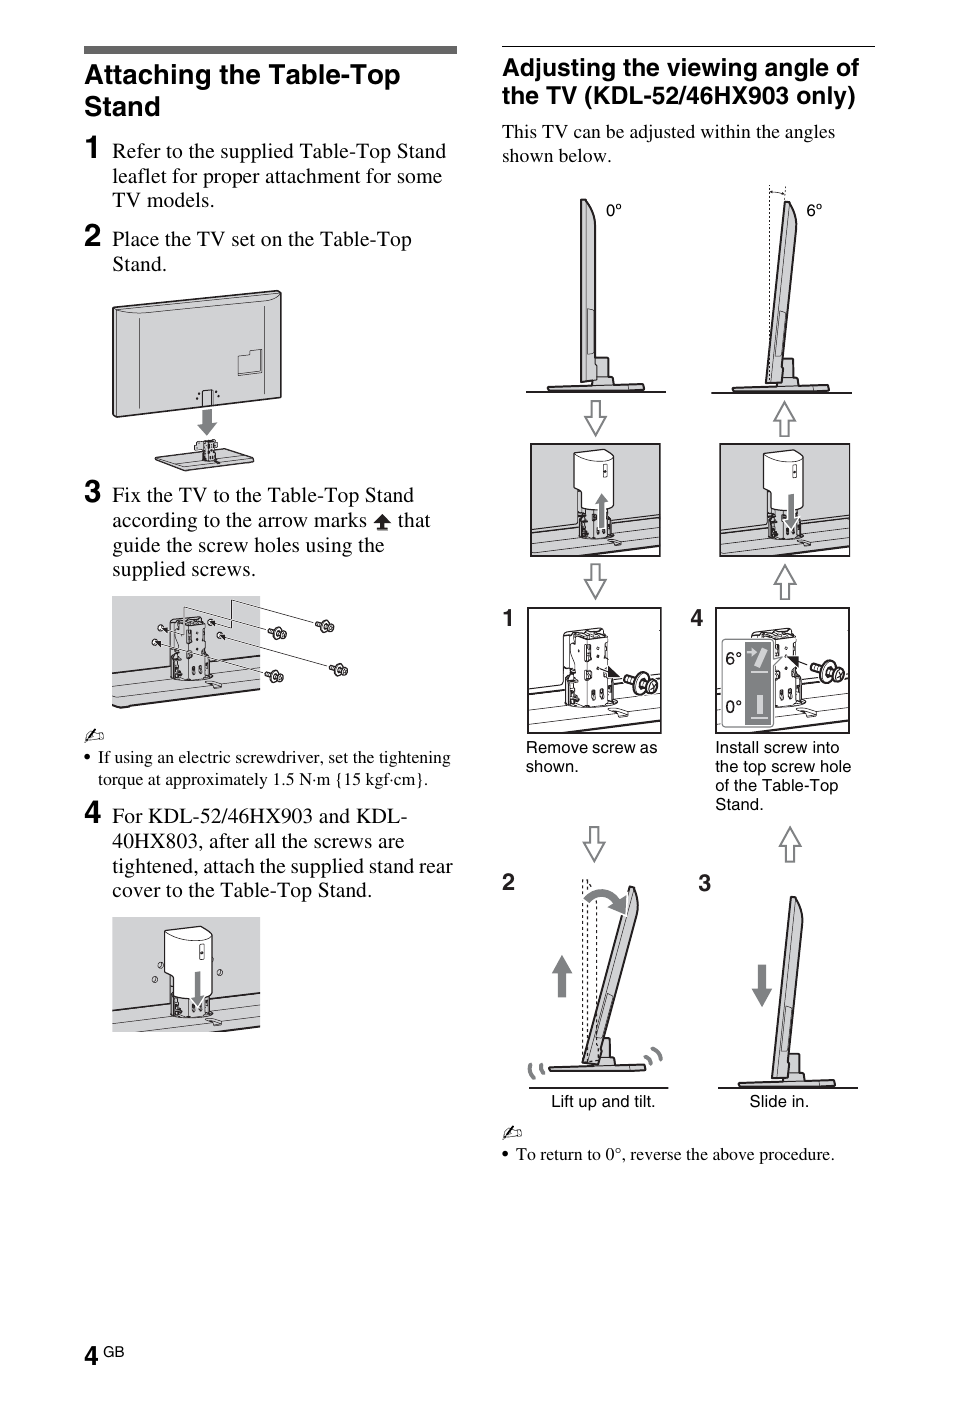 Setting Up Attaching The Table Top Stand Sony Bravia 4 180 175 11